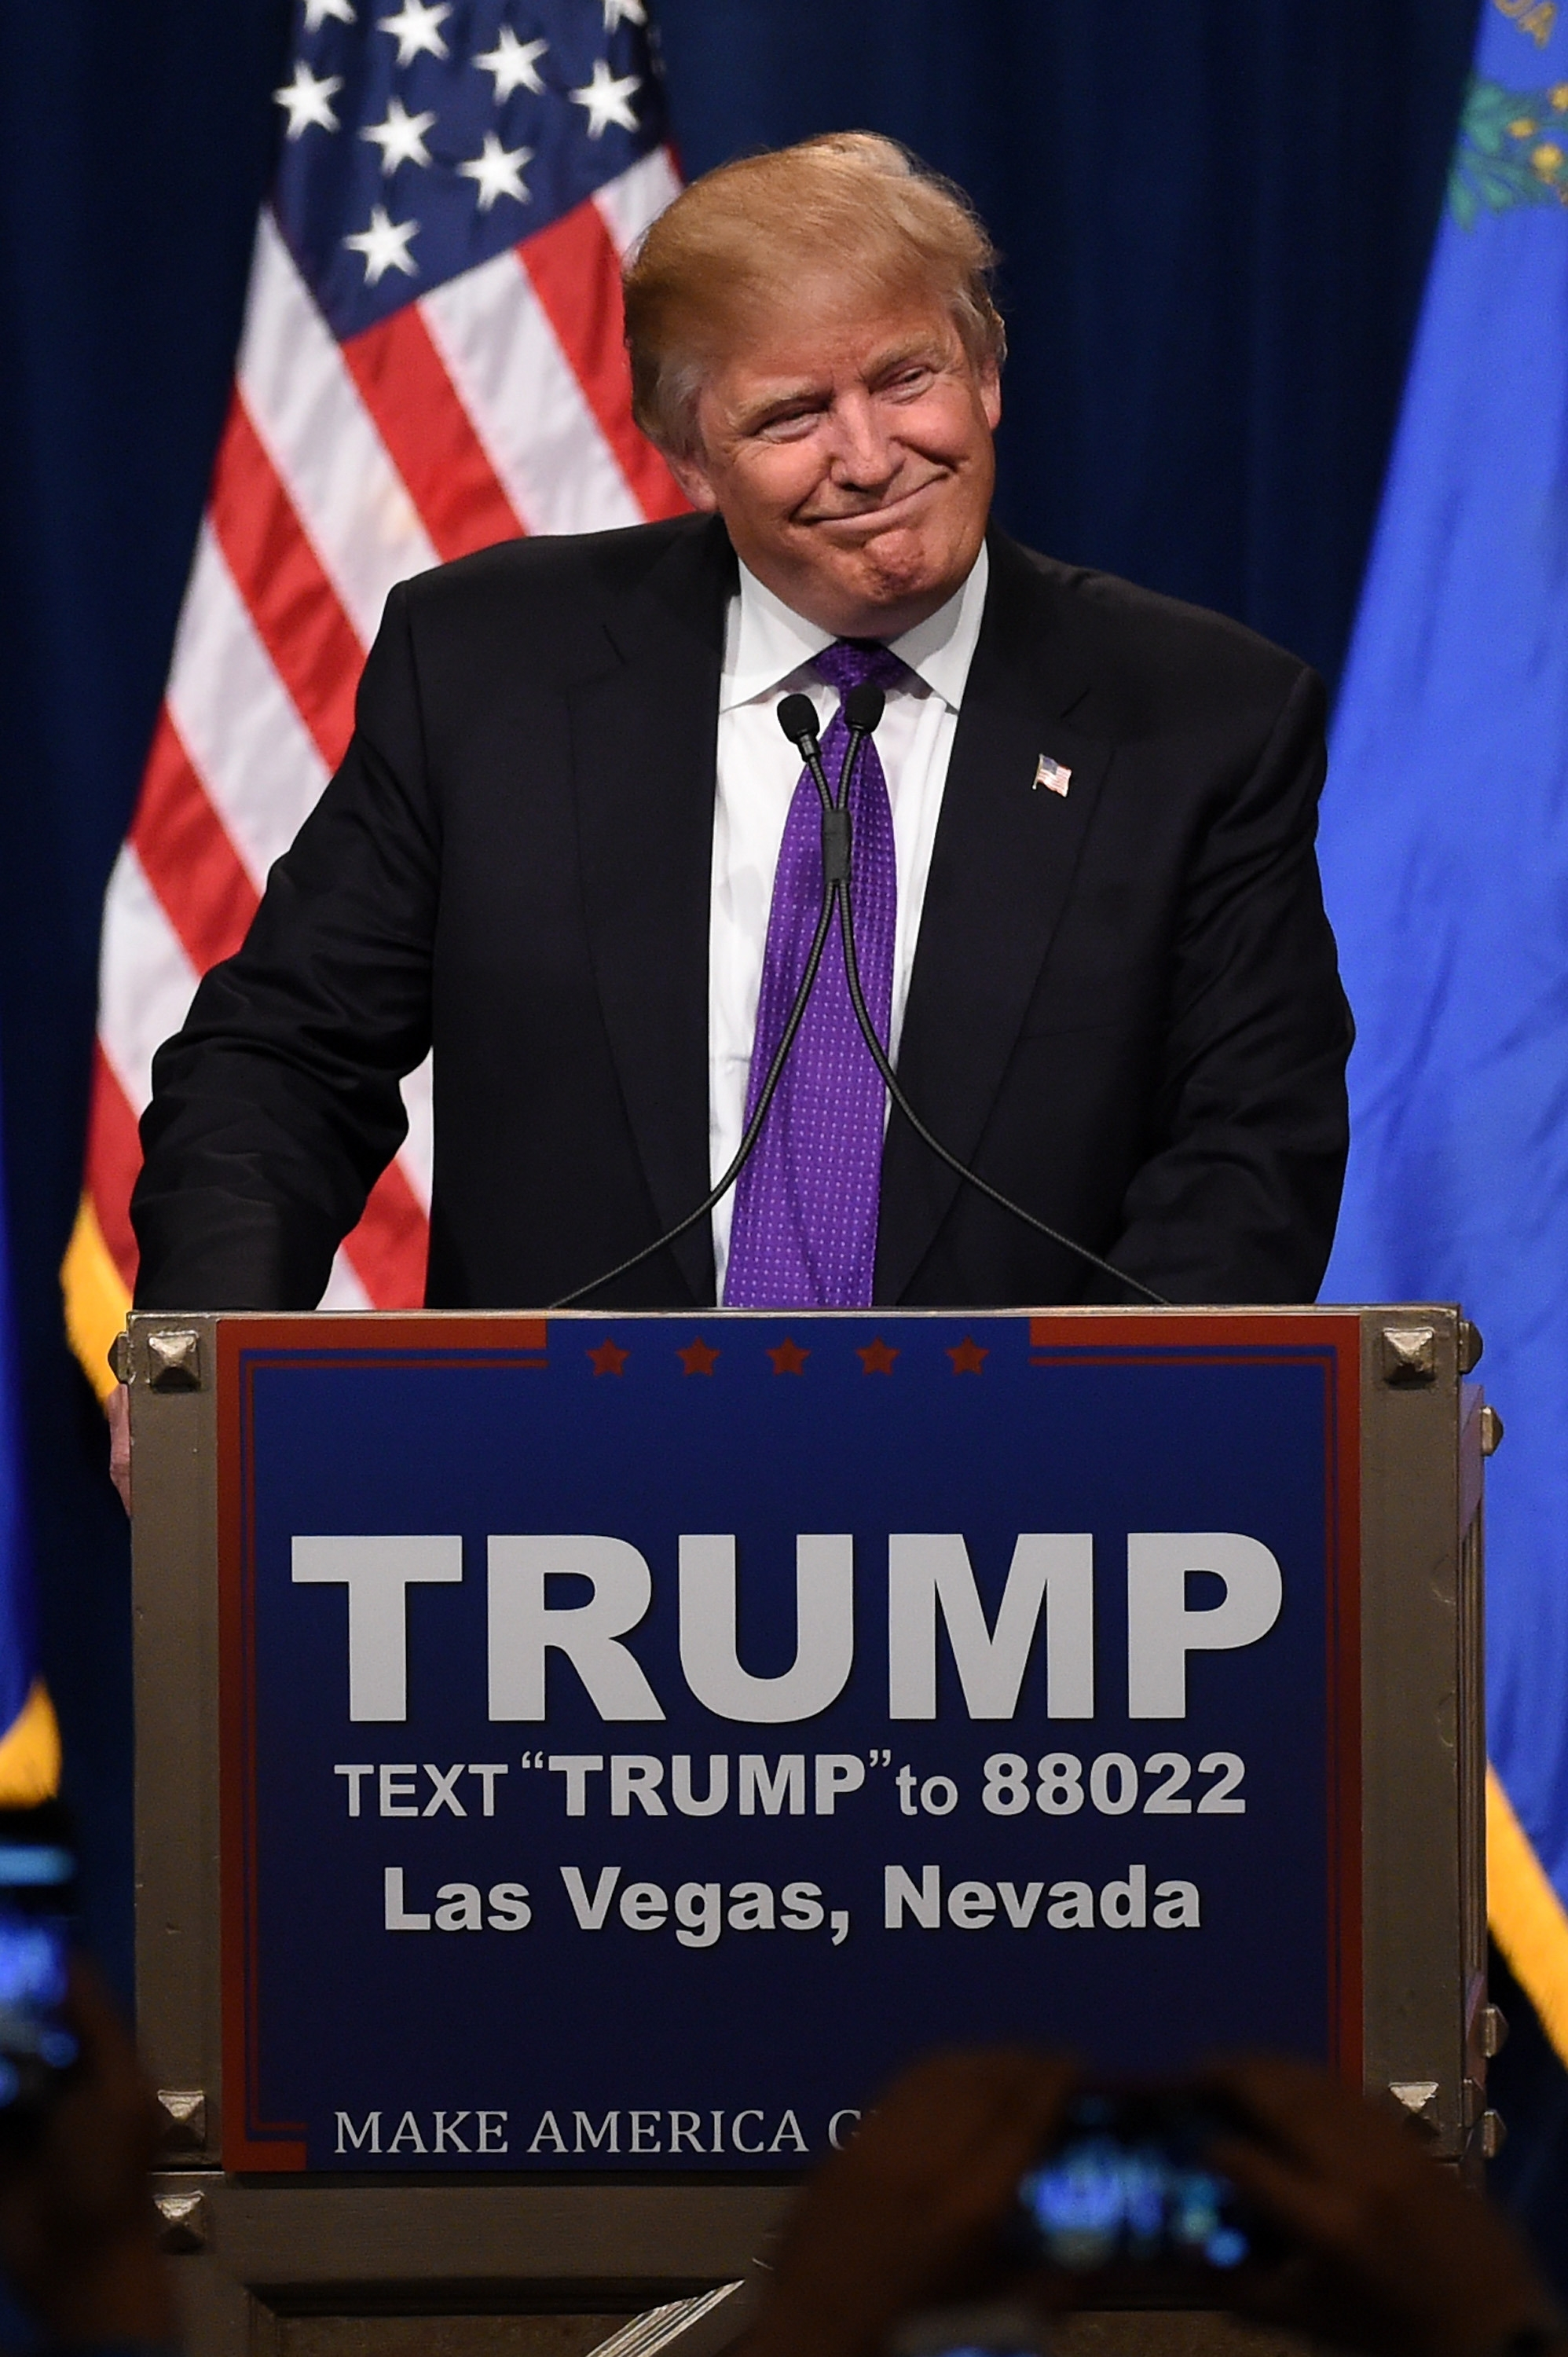 Donald Trump, after winning Nevada caucuses big, has solidified position as Republican presidential front-runner.